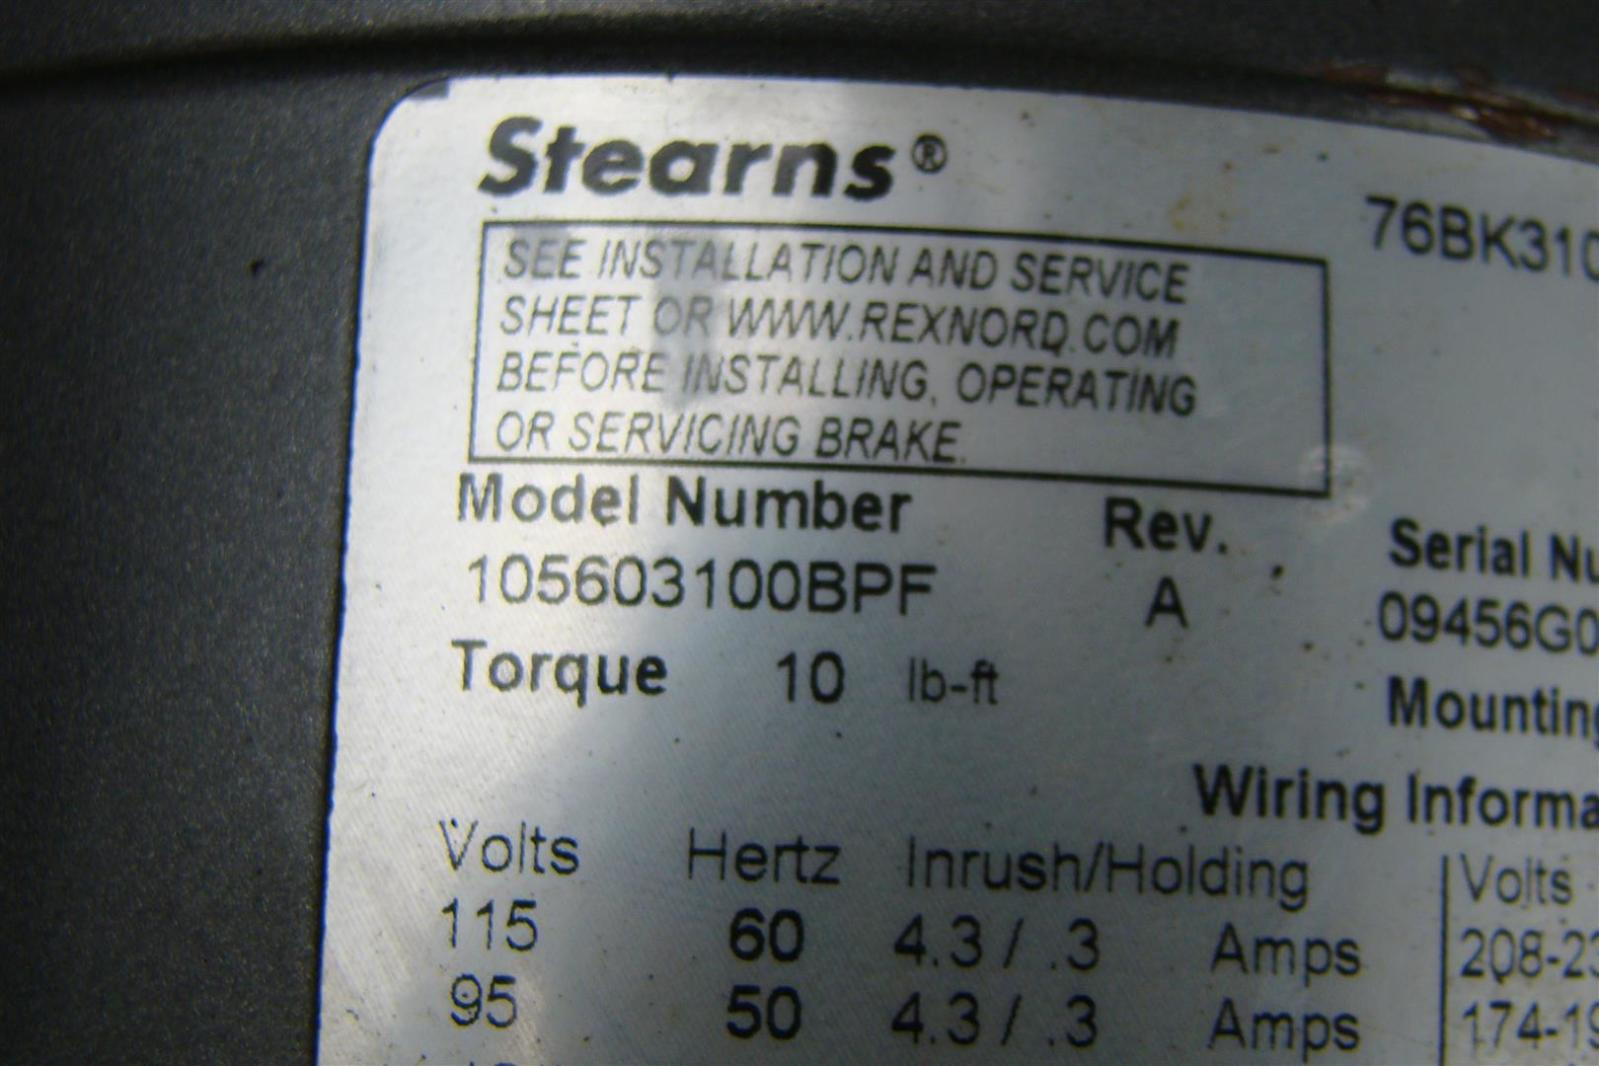 Stearns Brake Wiring Diagram 480 Panel For Wire Baldor Motor Caferacers Com 220 3 Phase Electricric 1